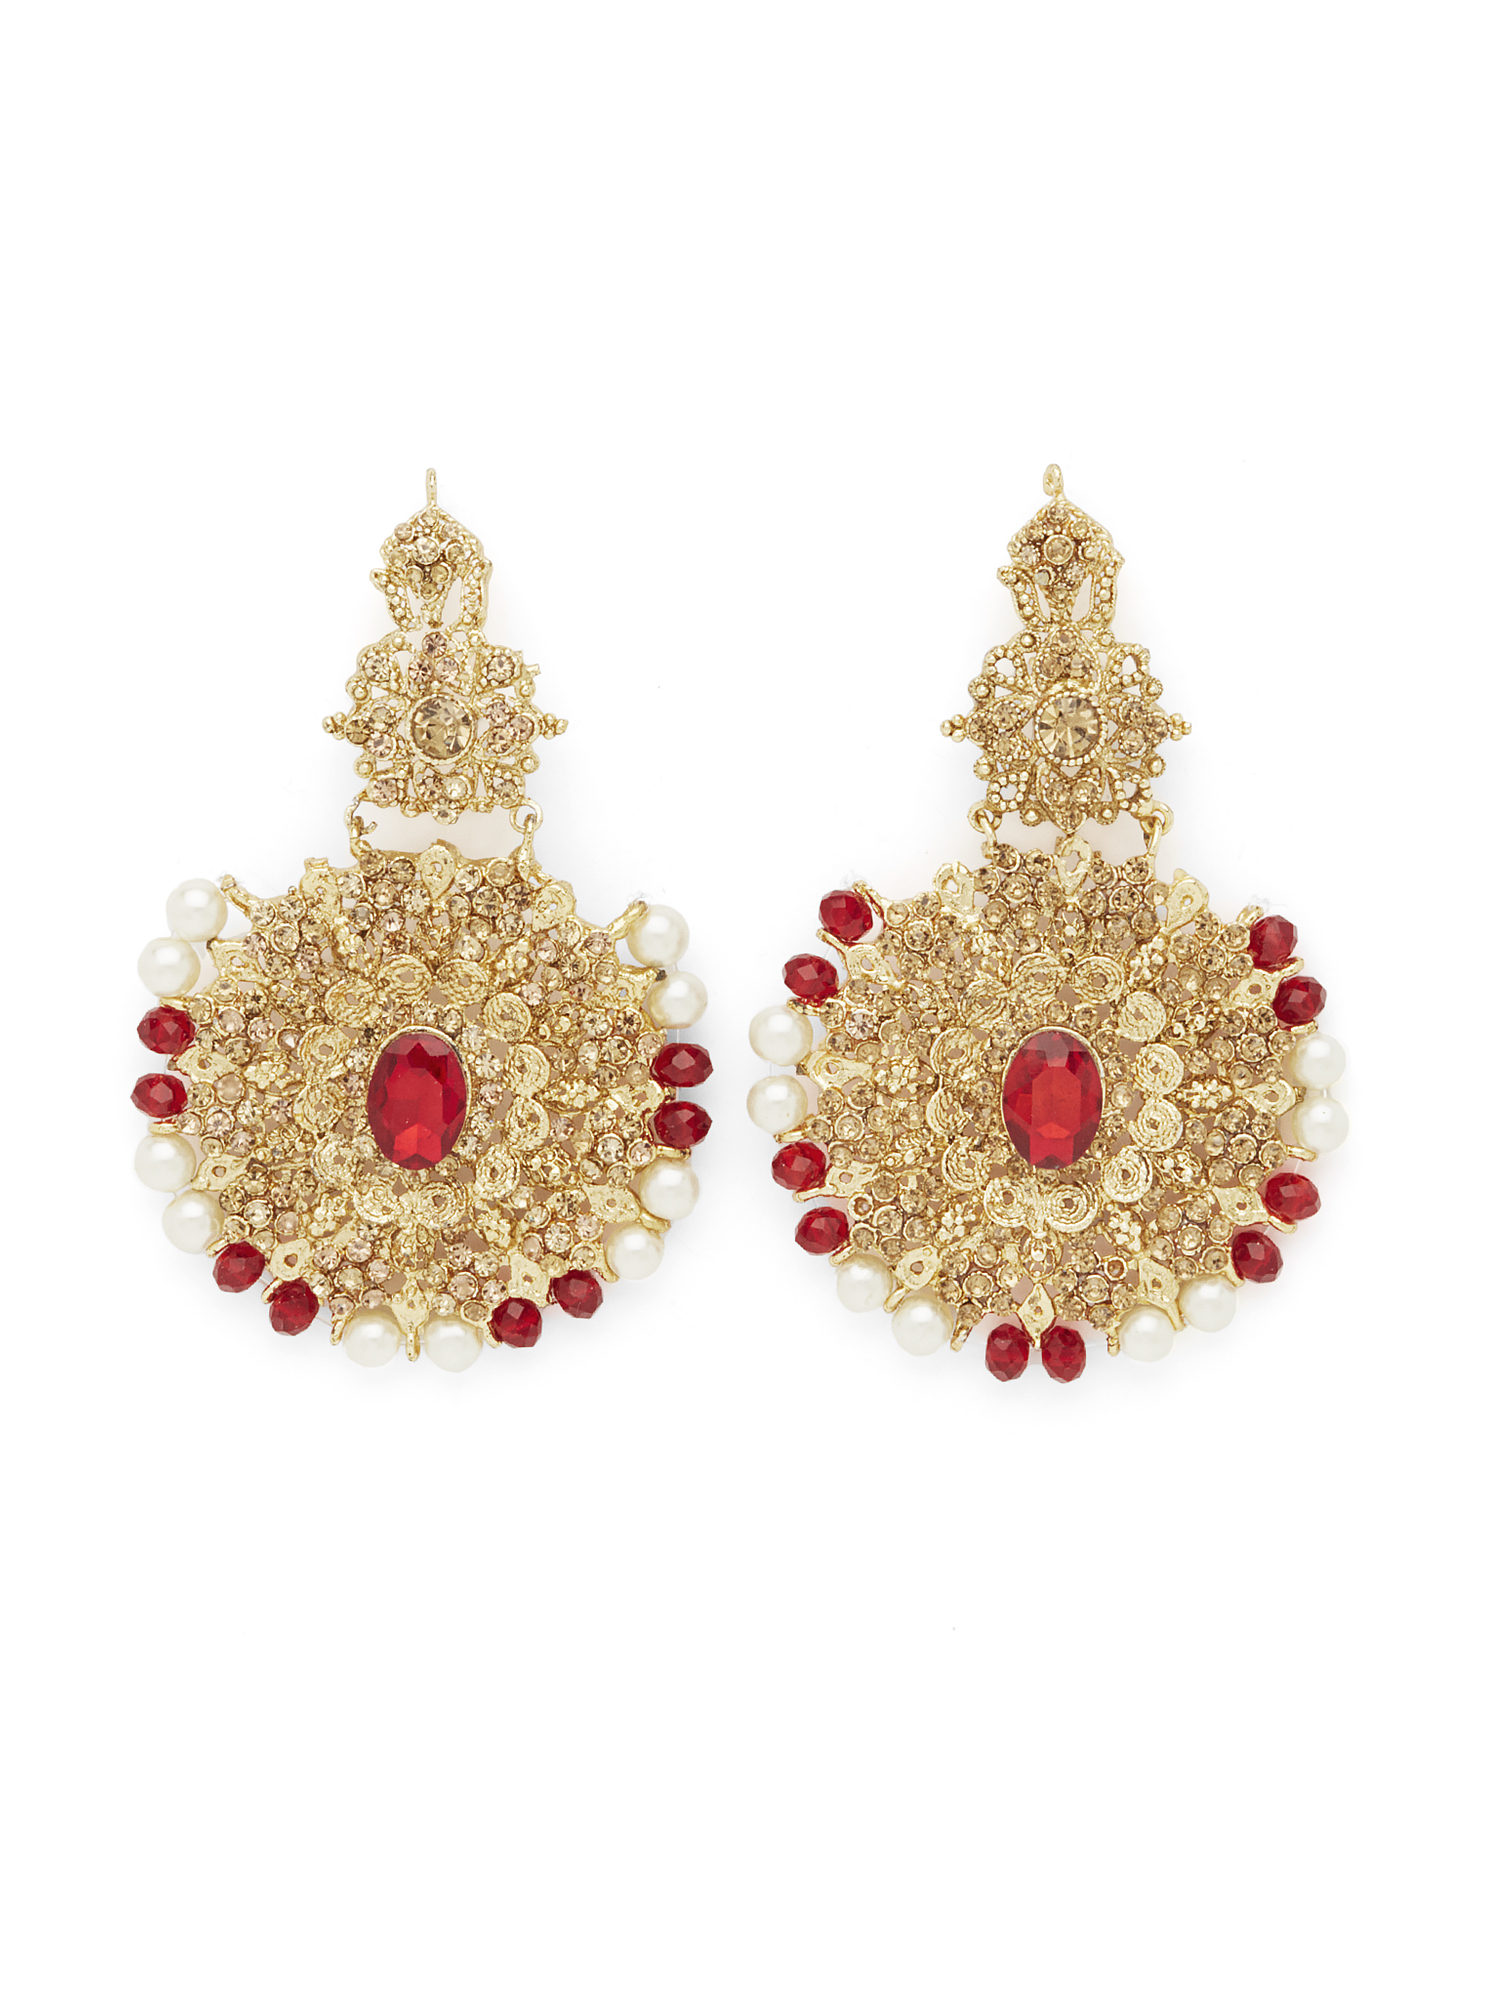 nigaam gold and of jewellery picture ruby earrings white diamond drop